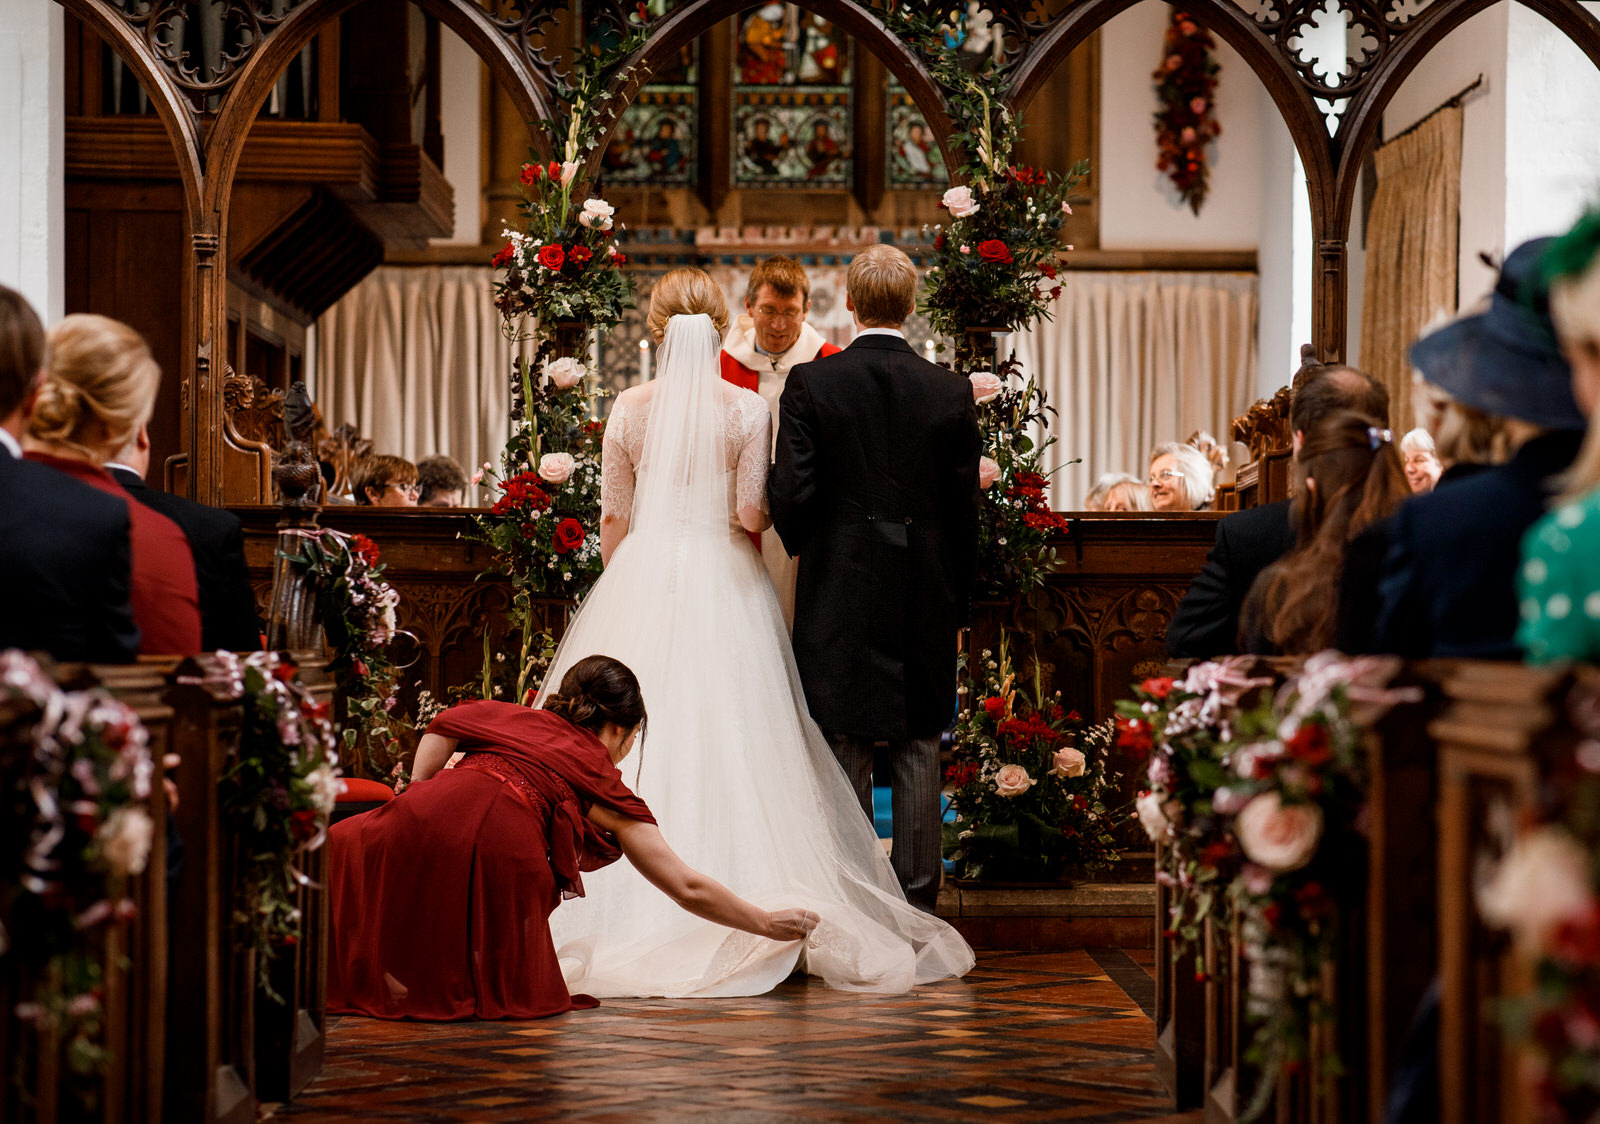 bridesmaid arranging brides dress in church aisle